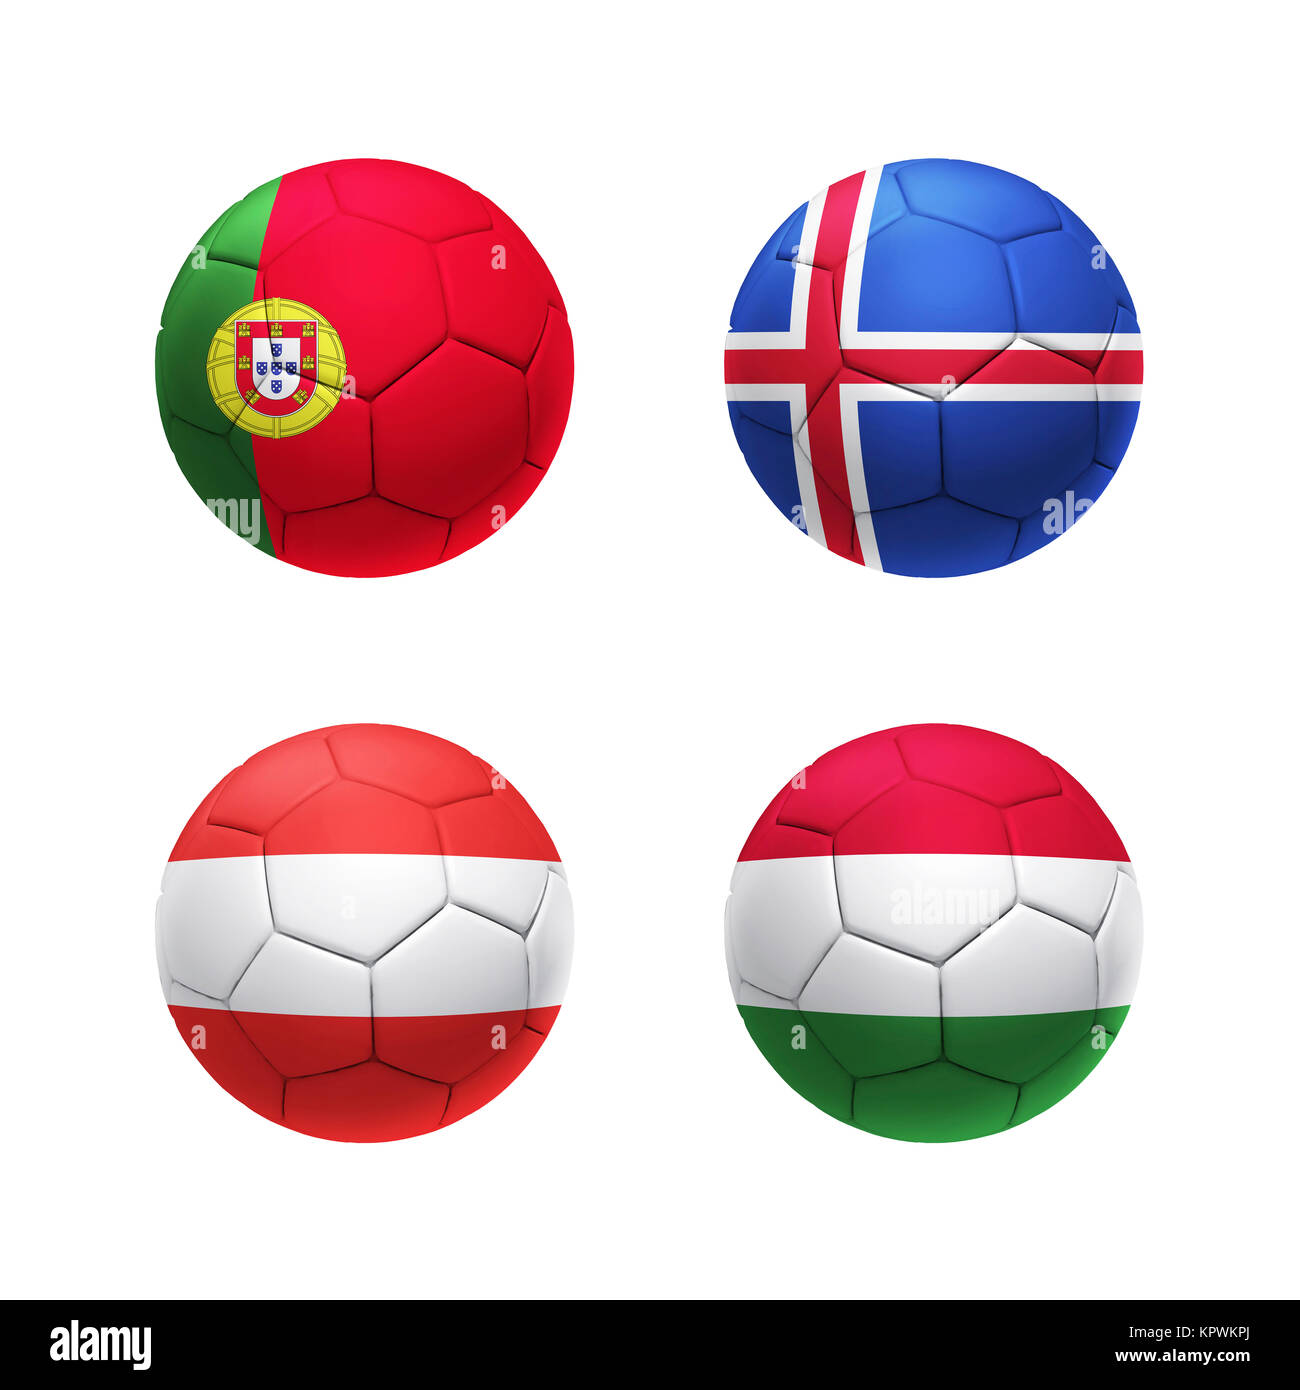 3D soccer ball with group F teams flags - Stock Image